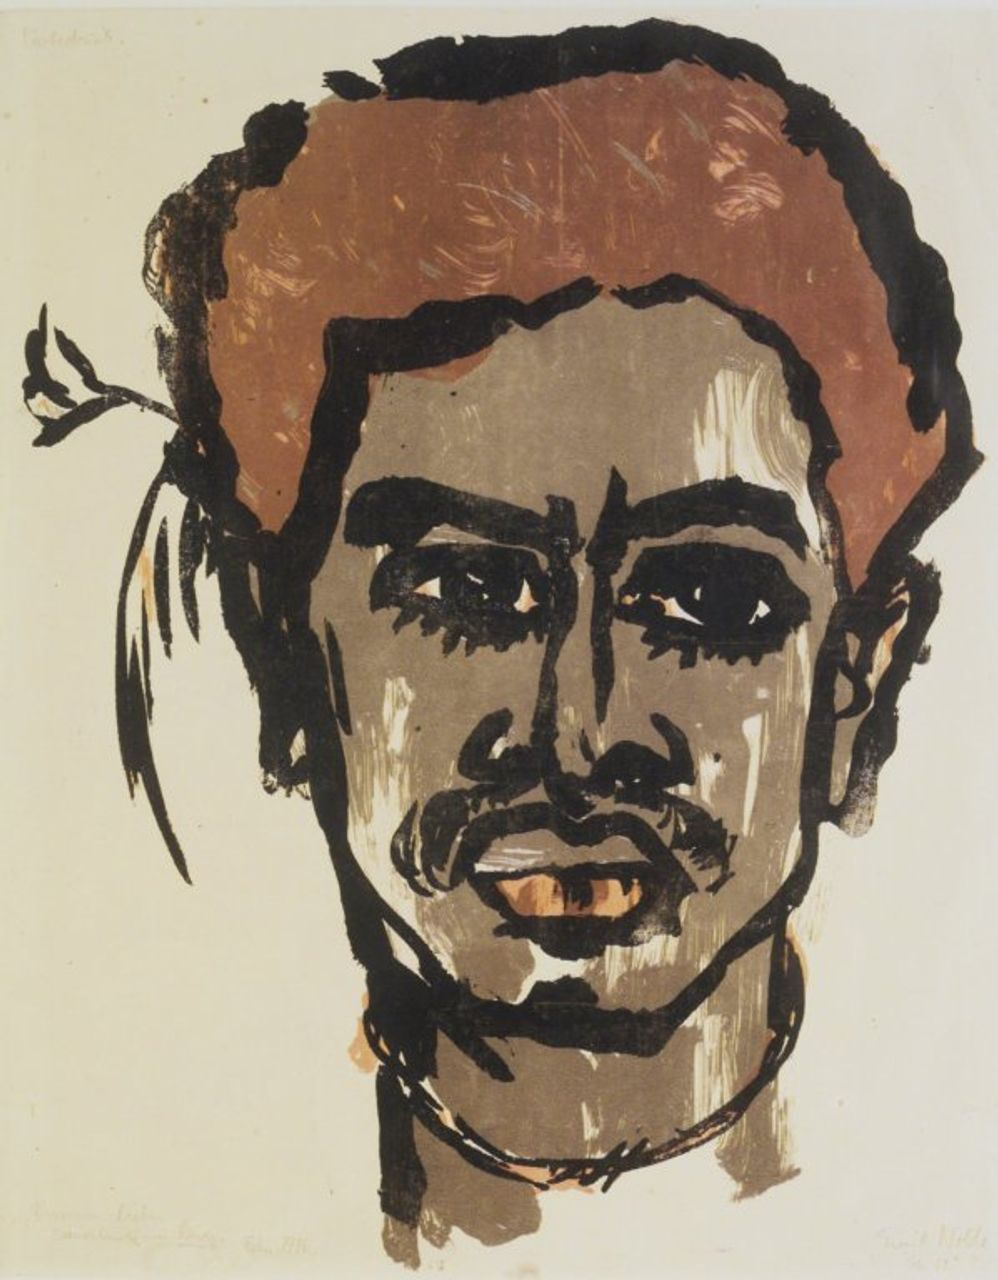 South Sea Islander, Emil Nolde, 1915 lithograph in colors, on wove paper, Brooklyn Museum